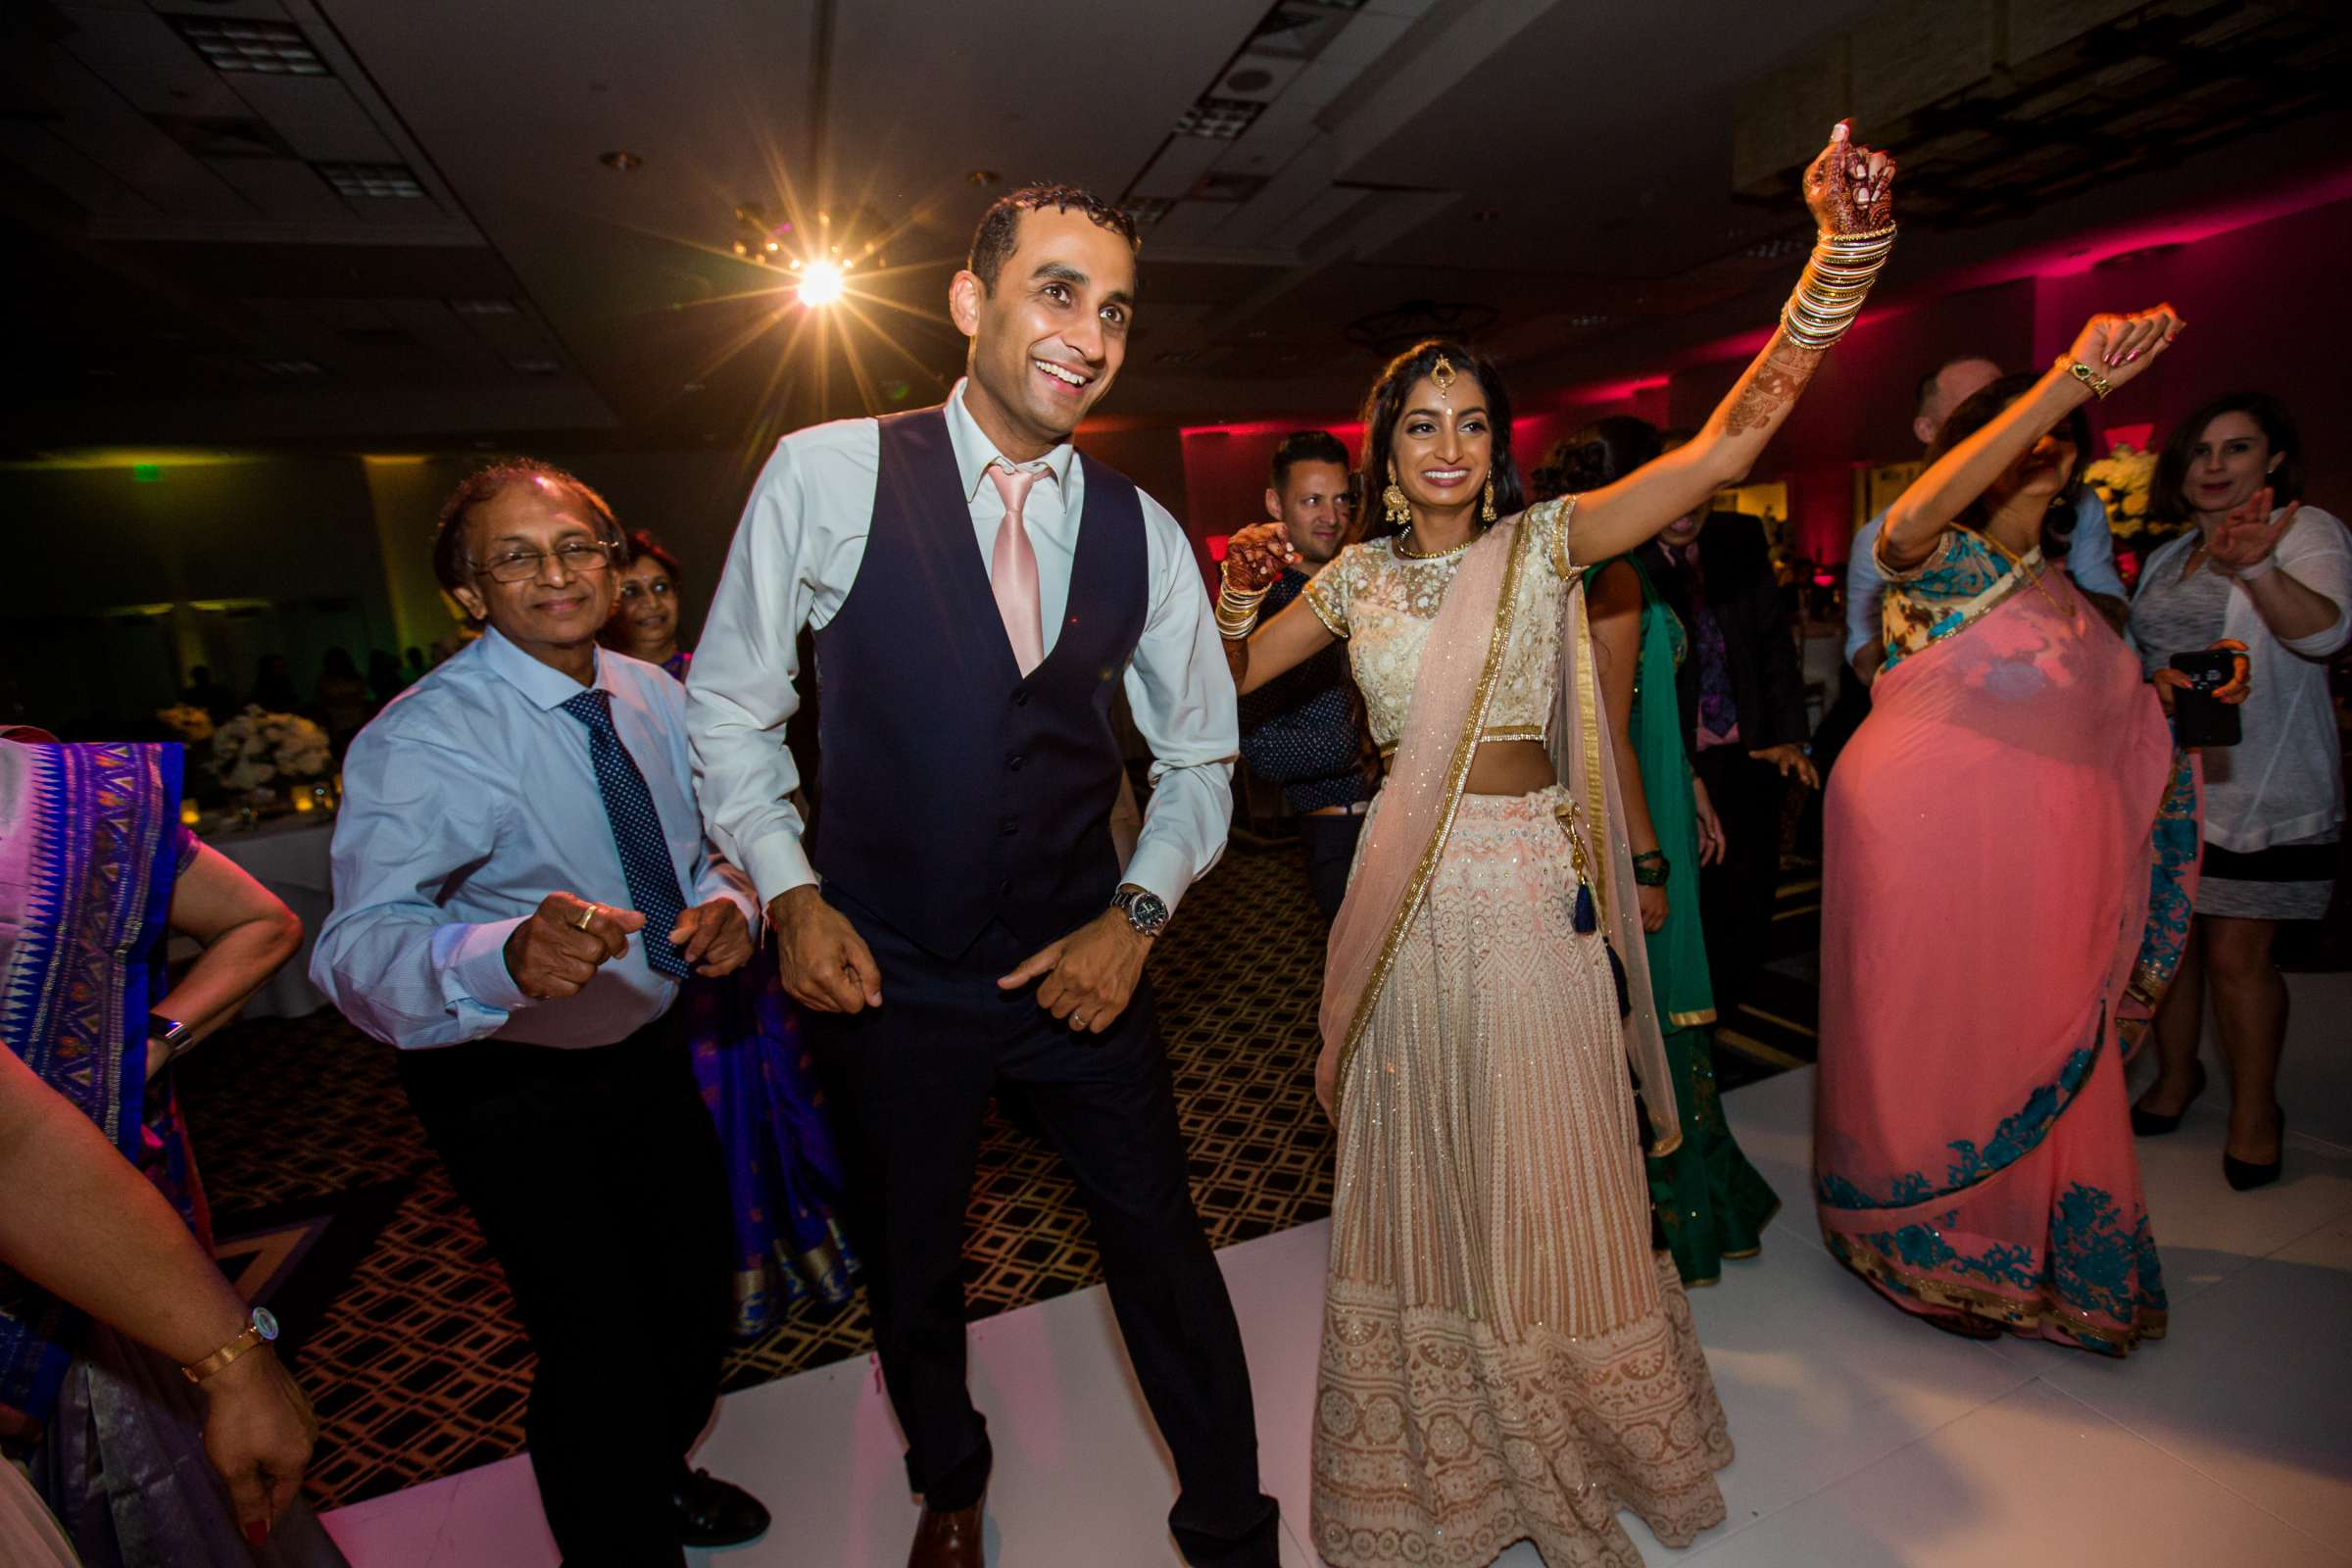 The Westin Carlsbad Resort and Spa Wedding coordinated by Shilpa Patel Events, Ami and Amit Wedding Photo #256 by True Photography